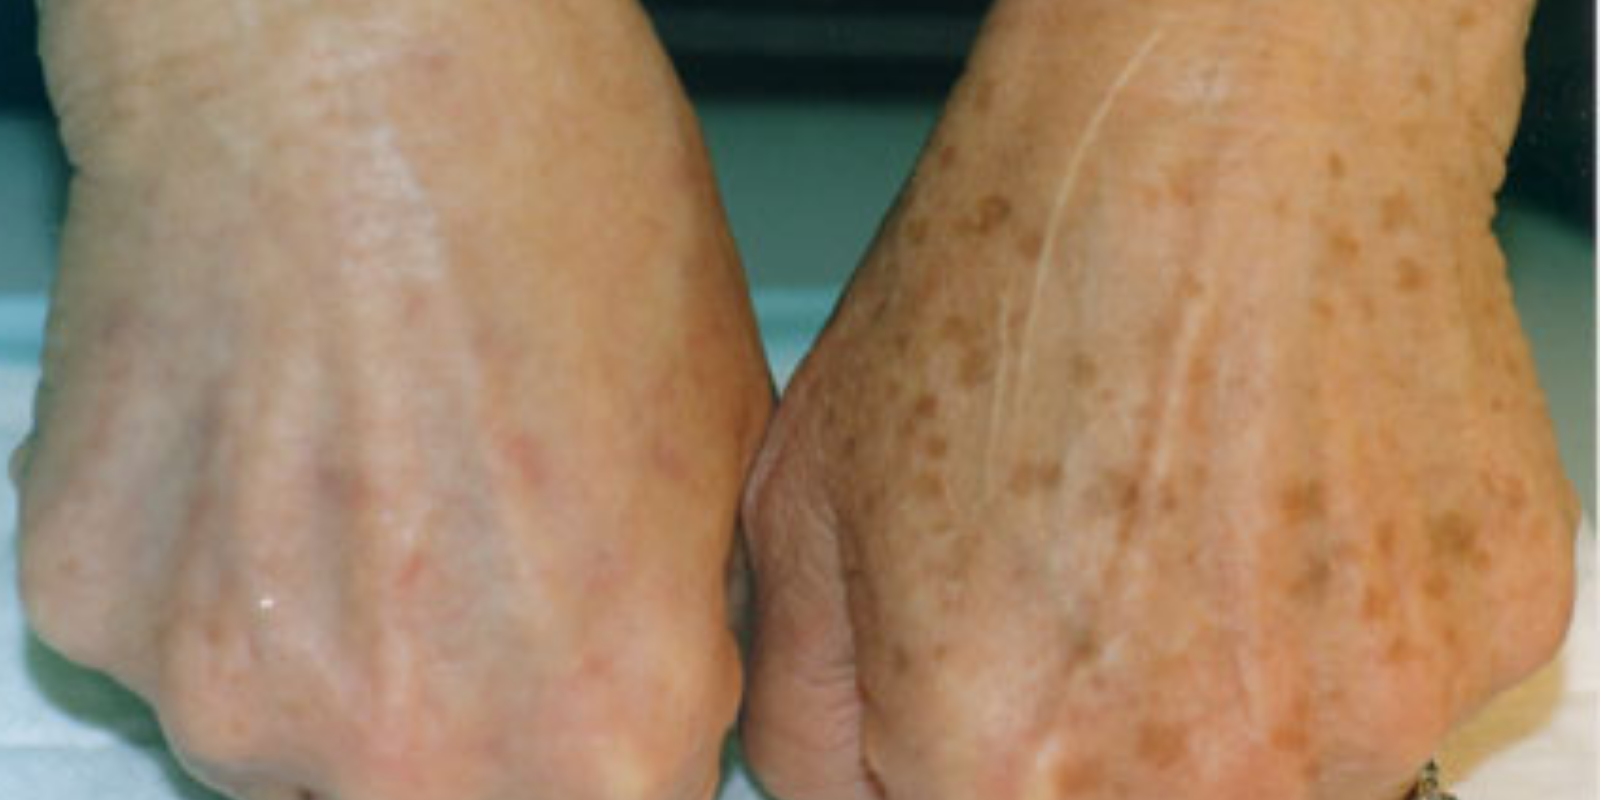 sun damage and age spots on hands. Treatment Victoria BC